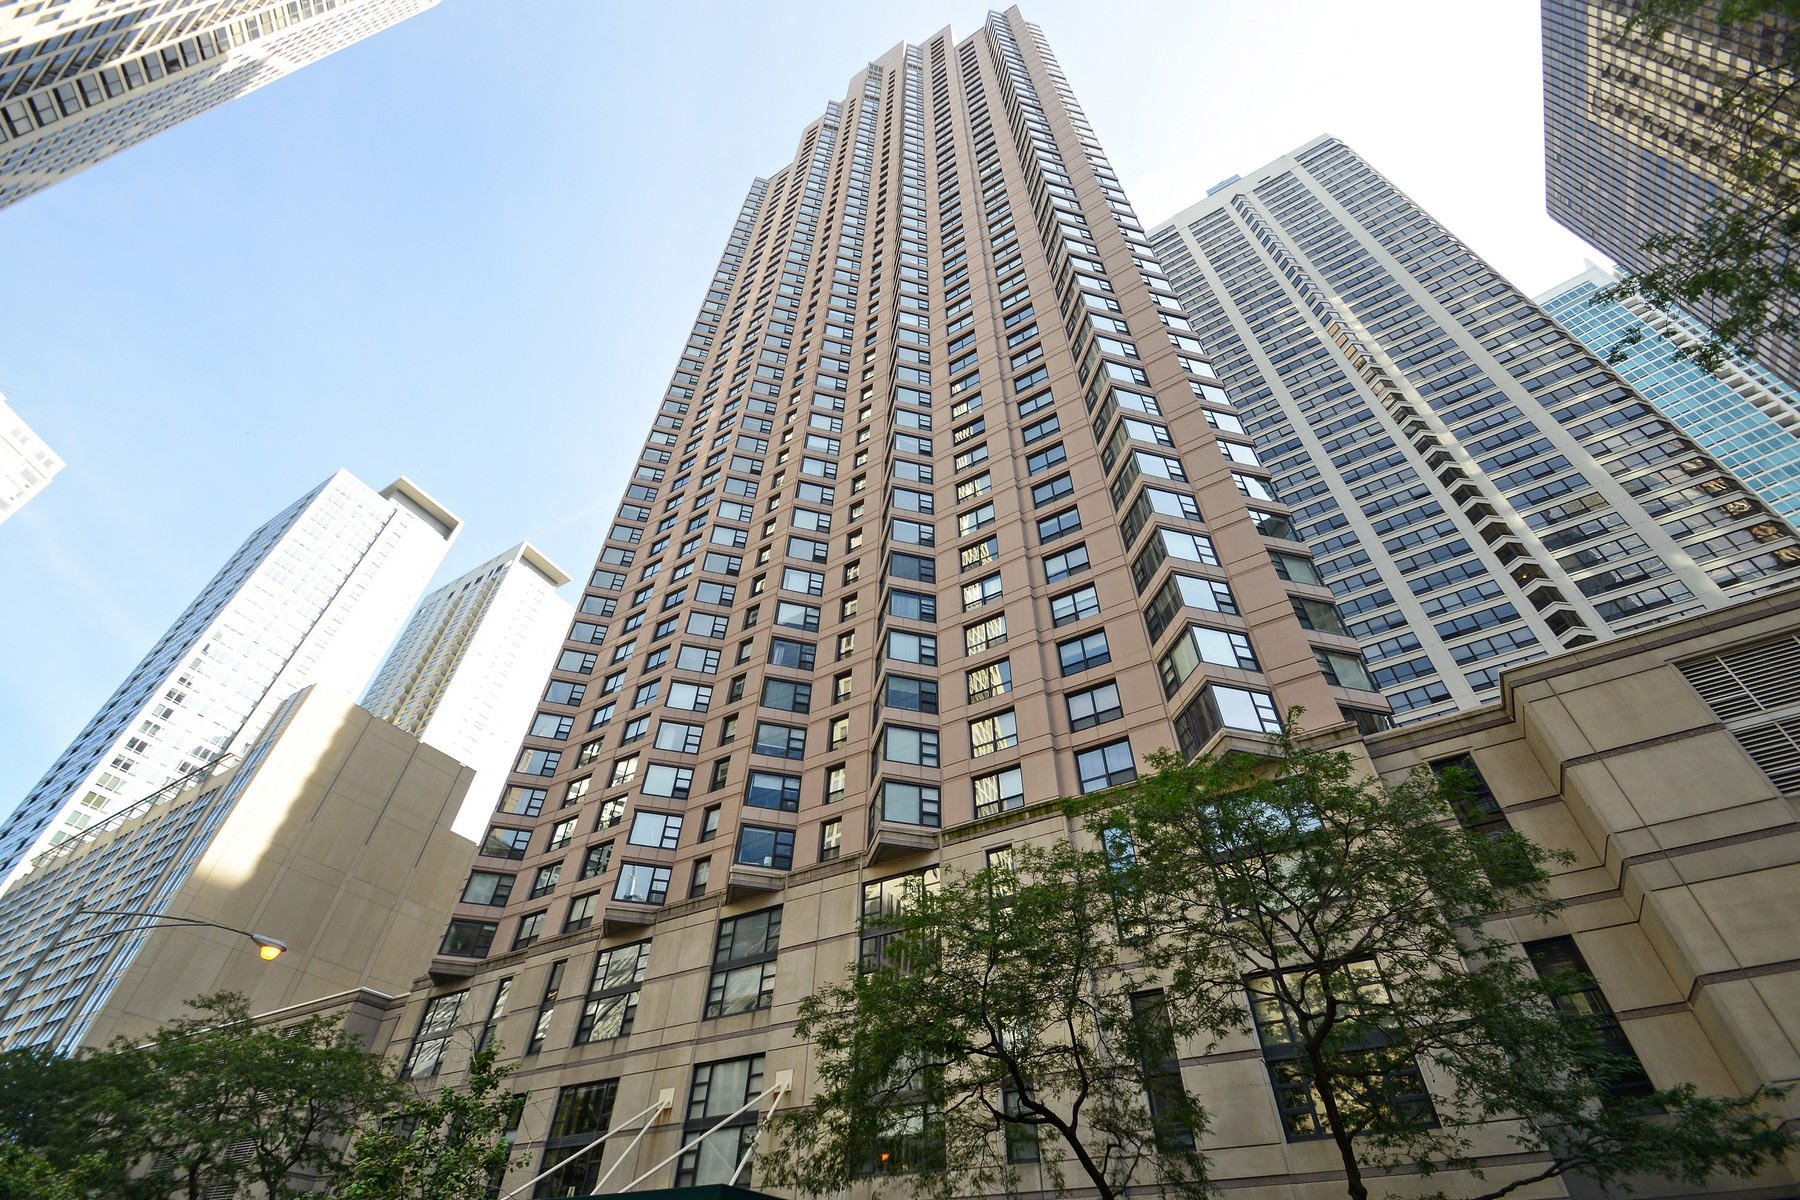 共管式独立产权公寓 为 销售 在 Perfect Move In Ready Condo 401 E Ontario Street #707 Near North Side, Chicago, 伊利诺斯州 60611 美国